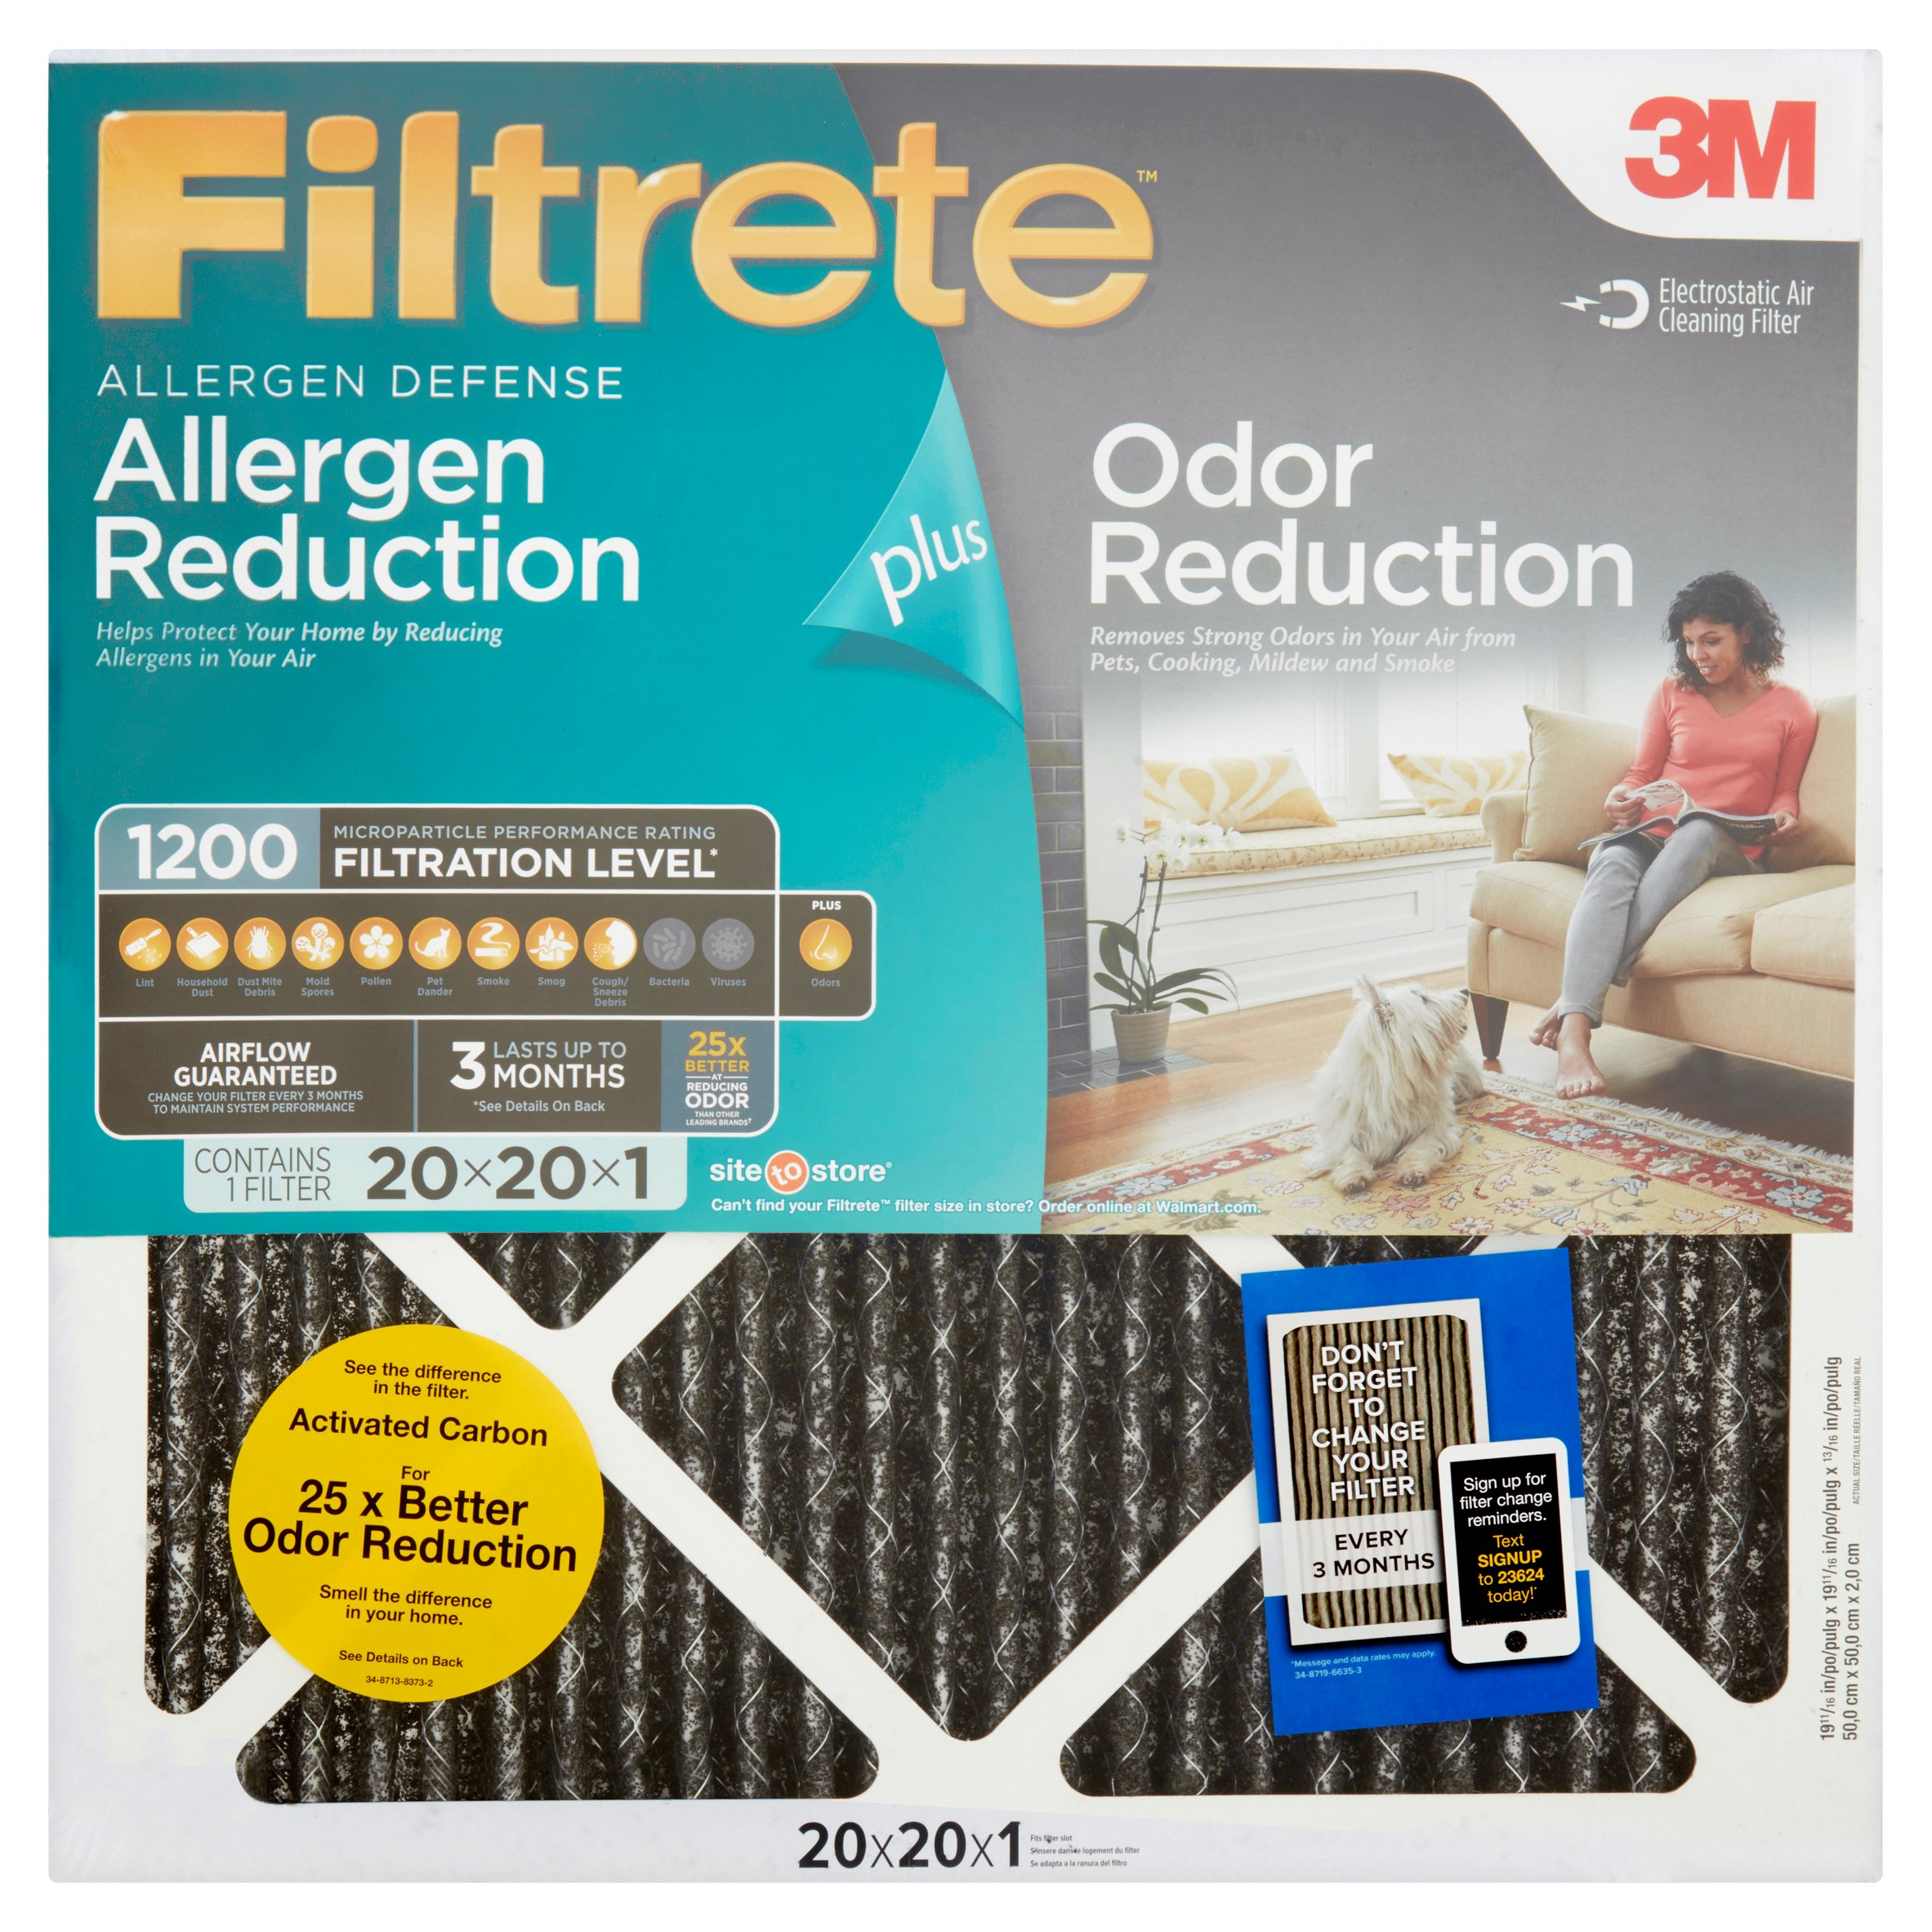 Filtrete Allergen Plus Odor Reduction HVAC Furnace Air Filter, 1200 MPR, 20 x 20 x 1, 1 Filter